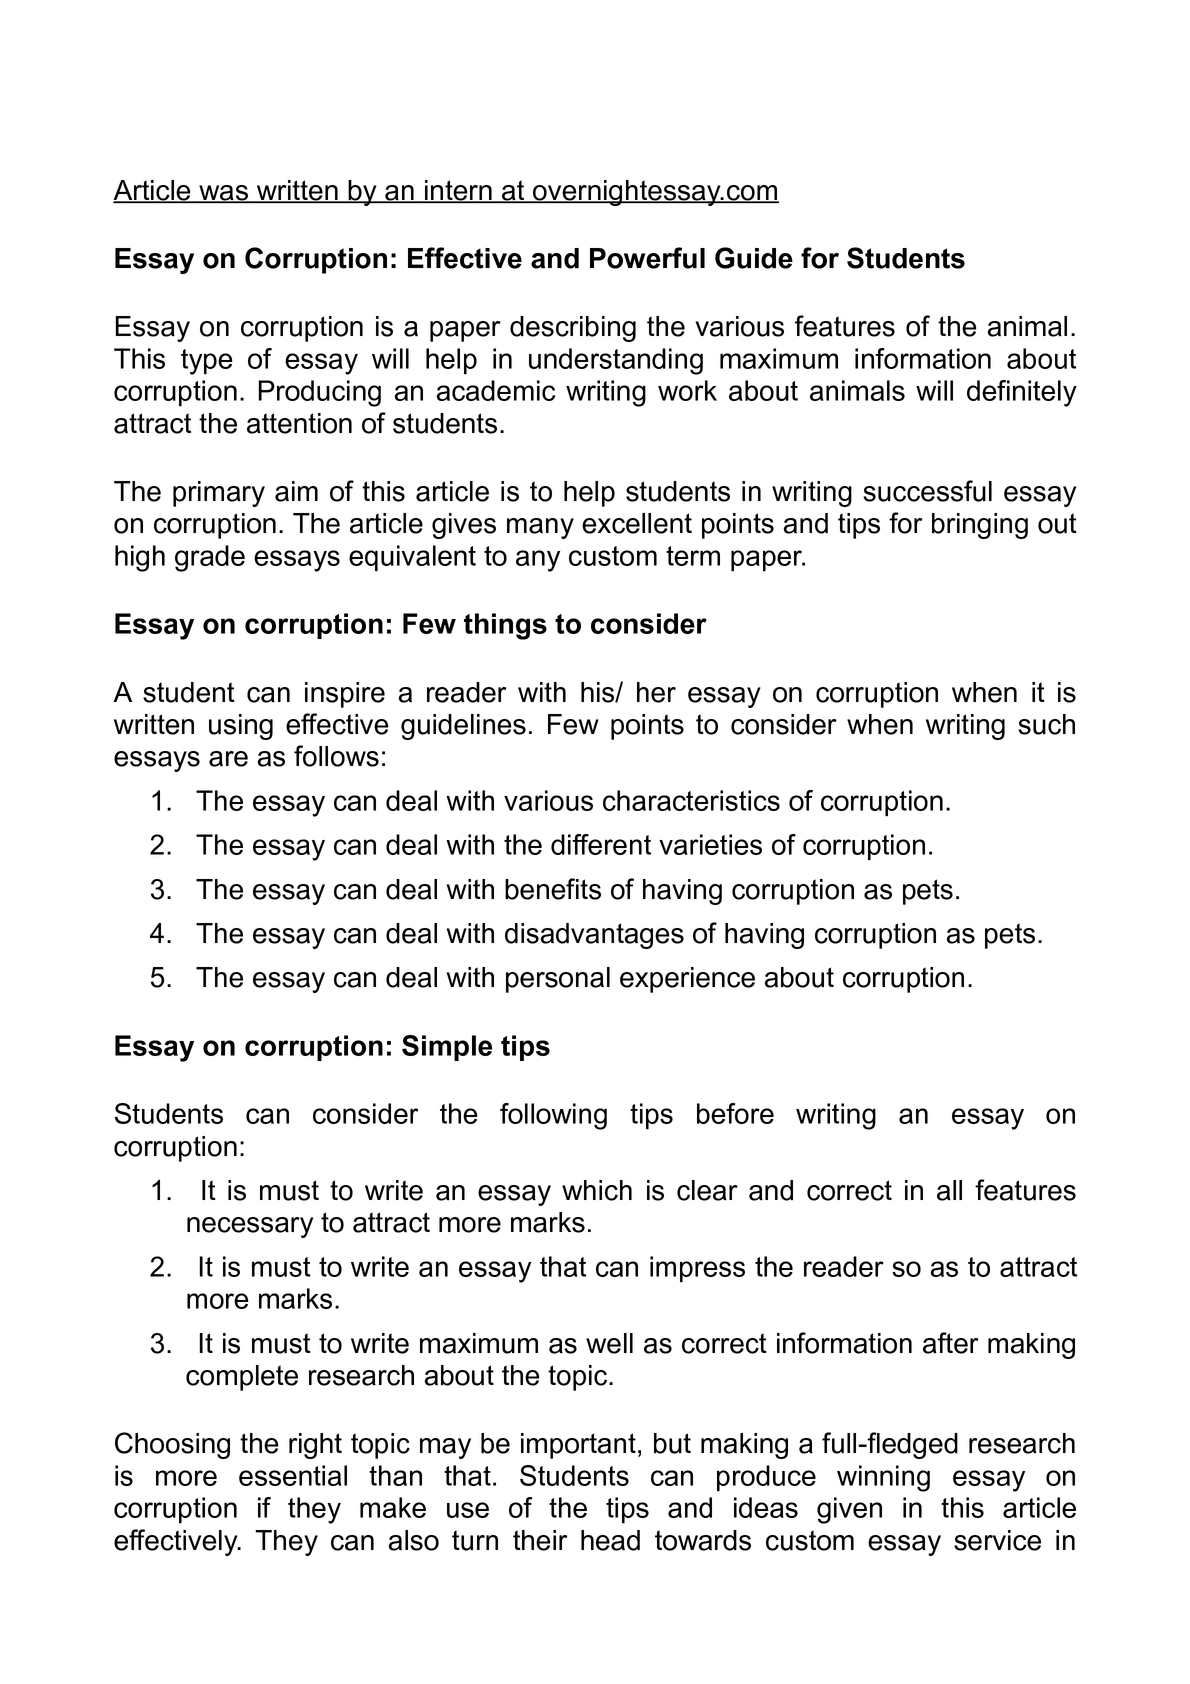 essay on politics and corruption n anti corruption movement words  essays on corruption calamatildecopyo essay on corruption effective and powerful guide for